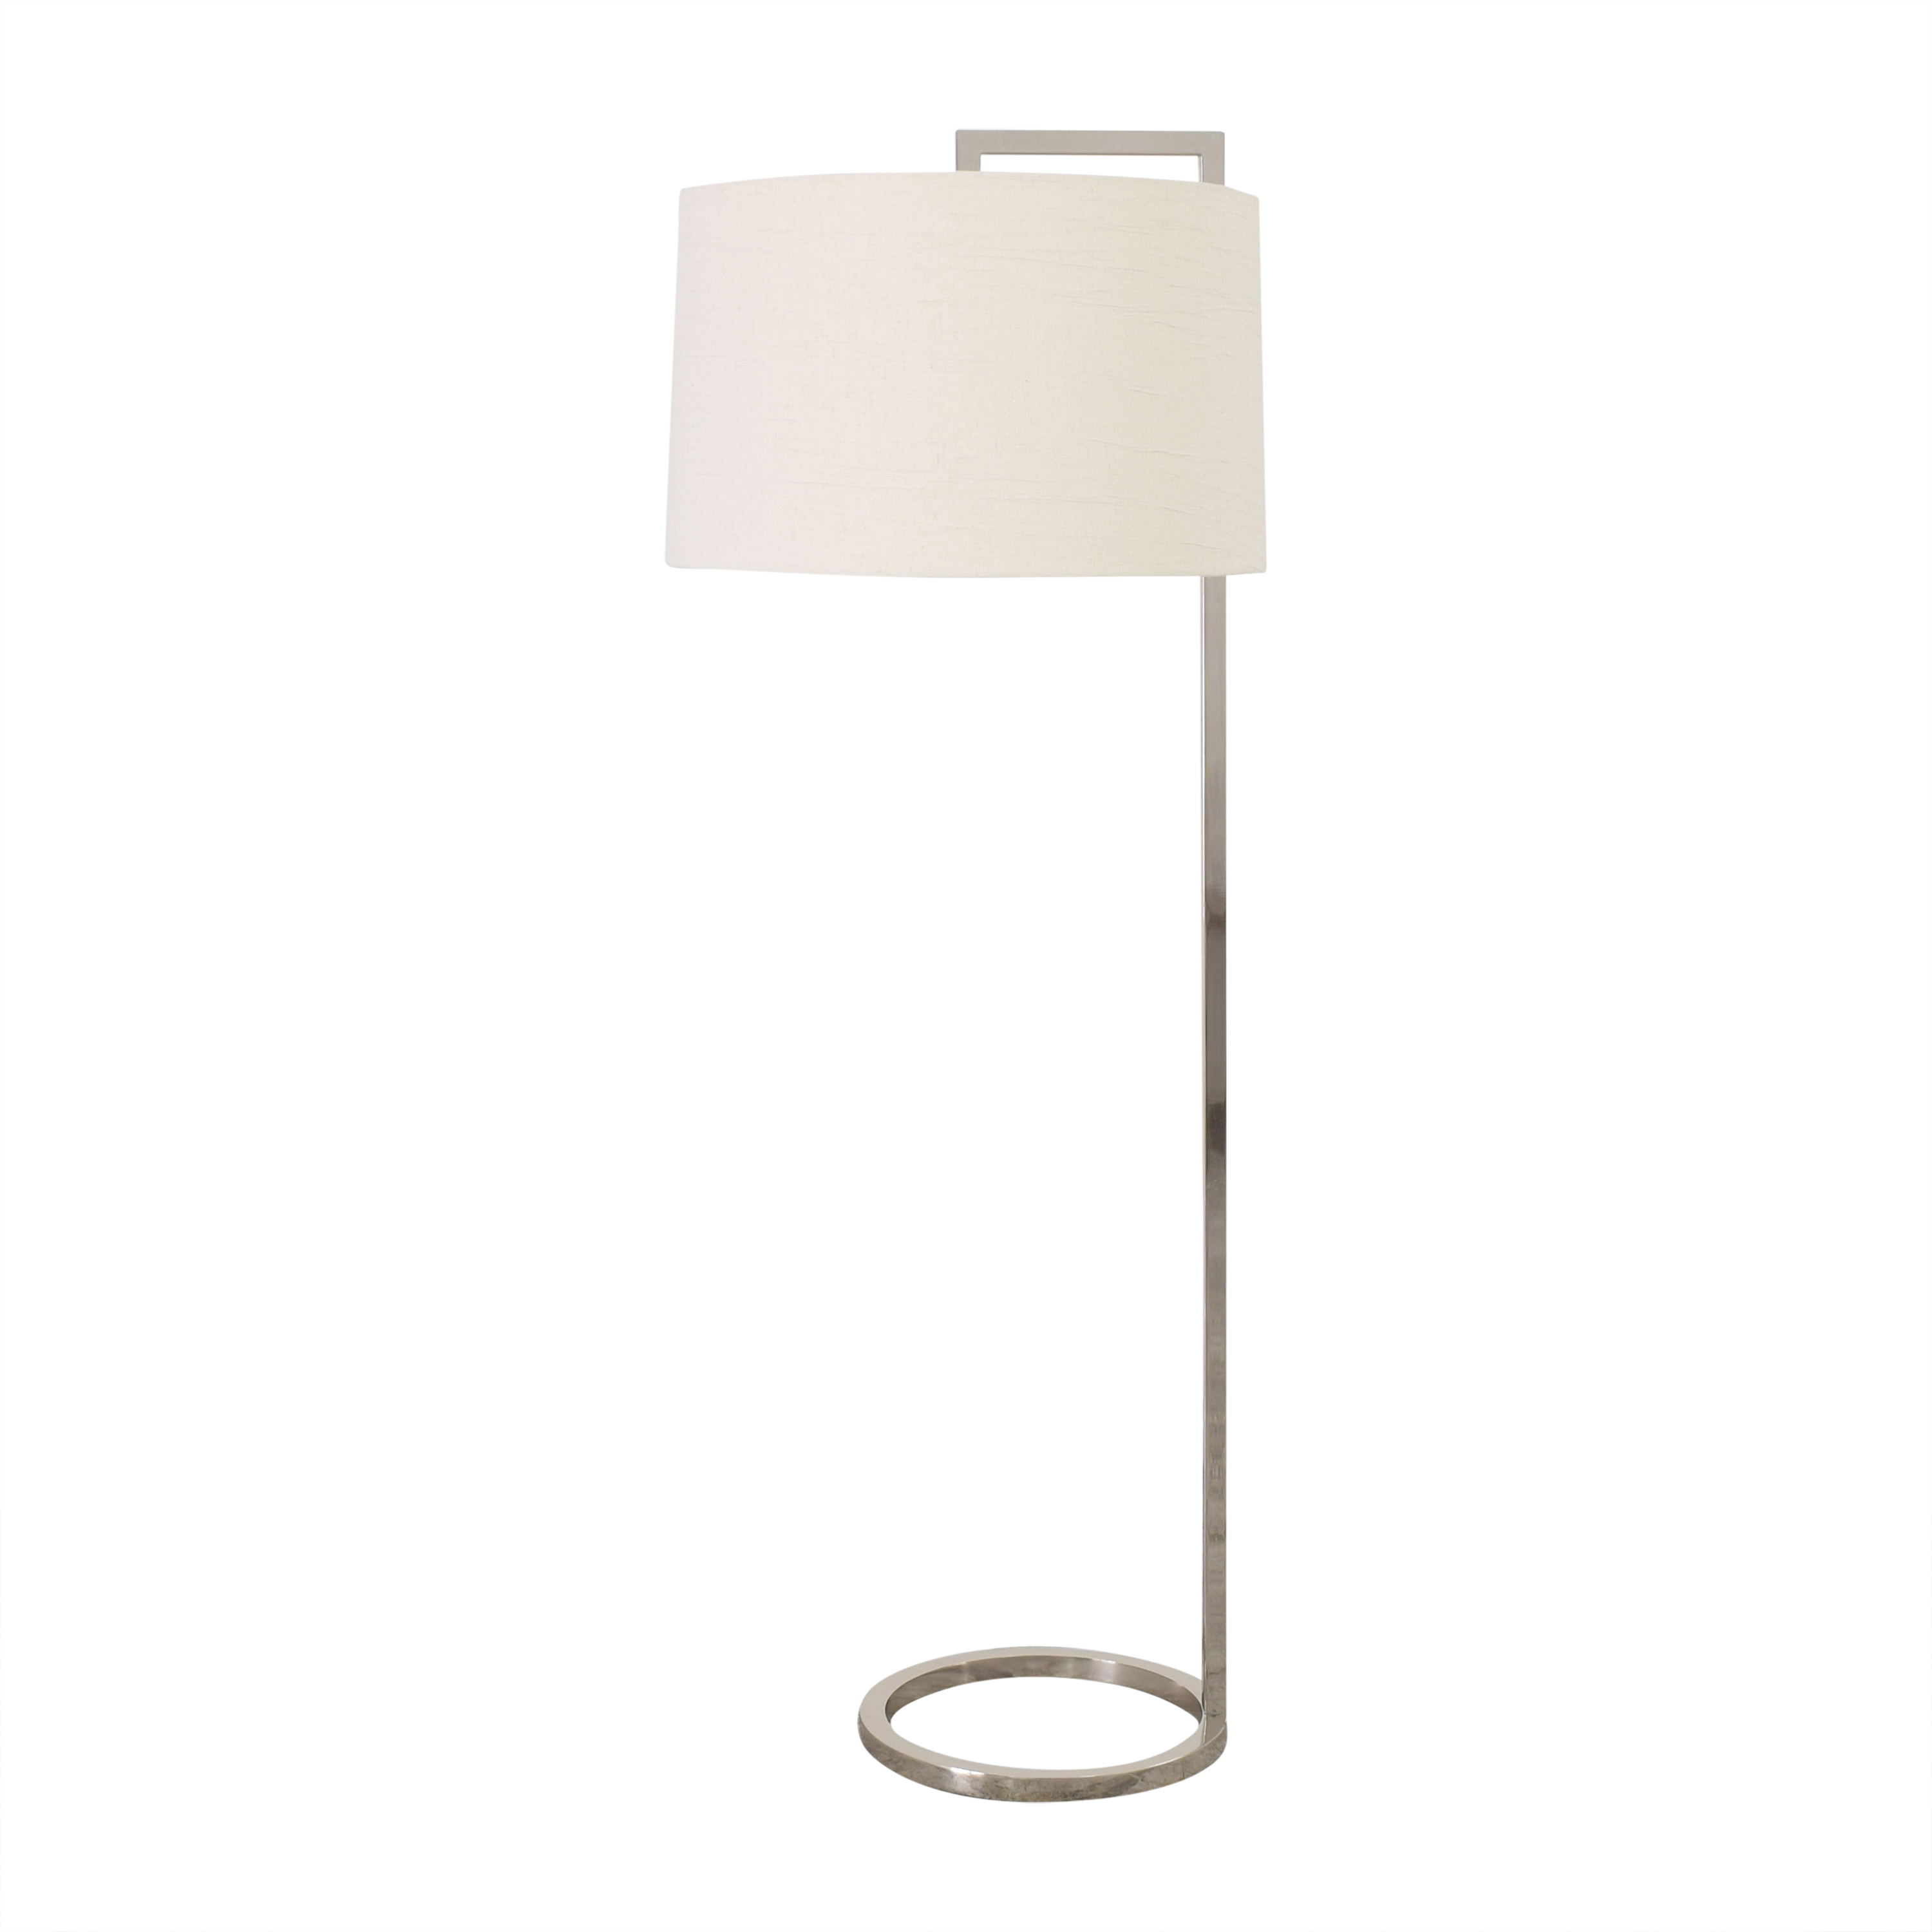 shop Arteriors Belden Floor Lamp Arteriors Lamps